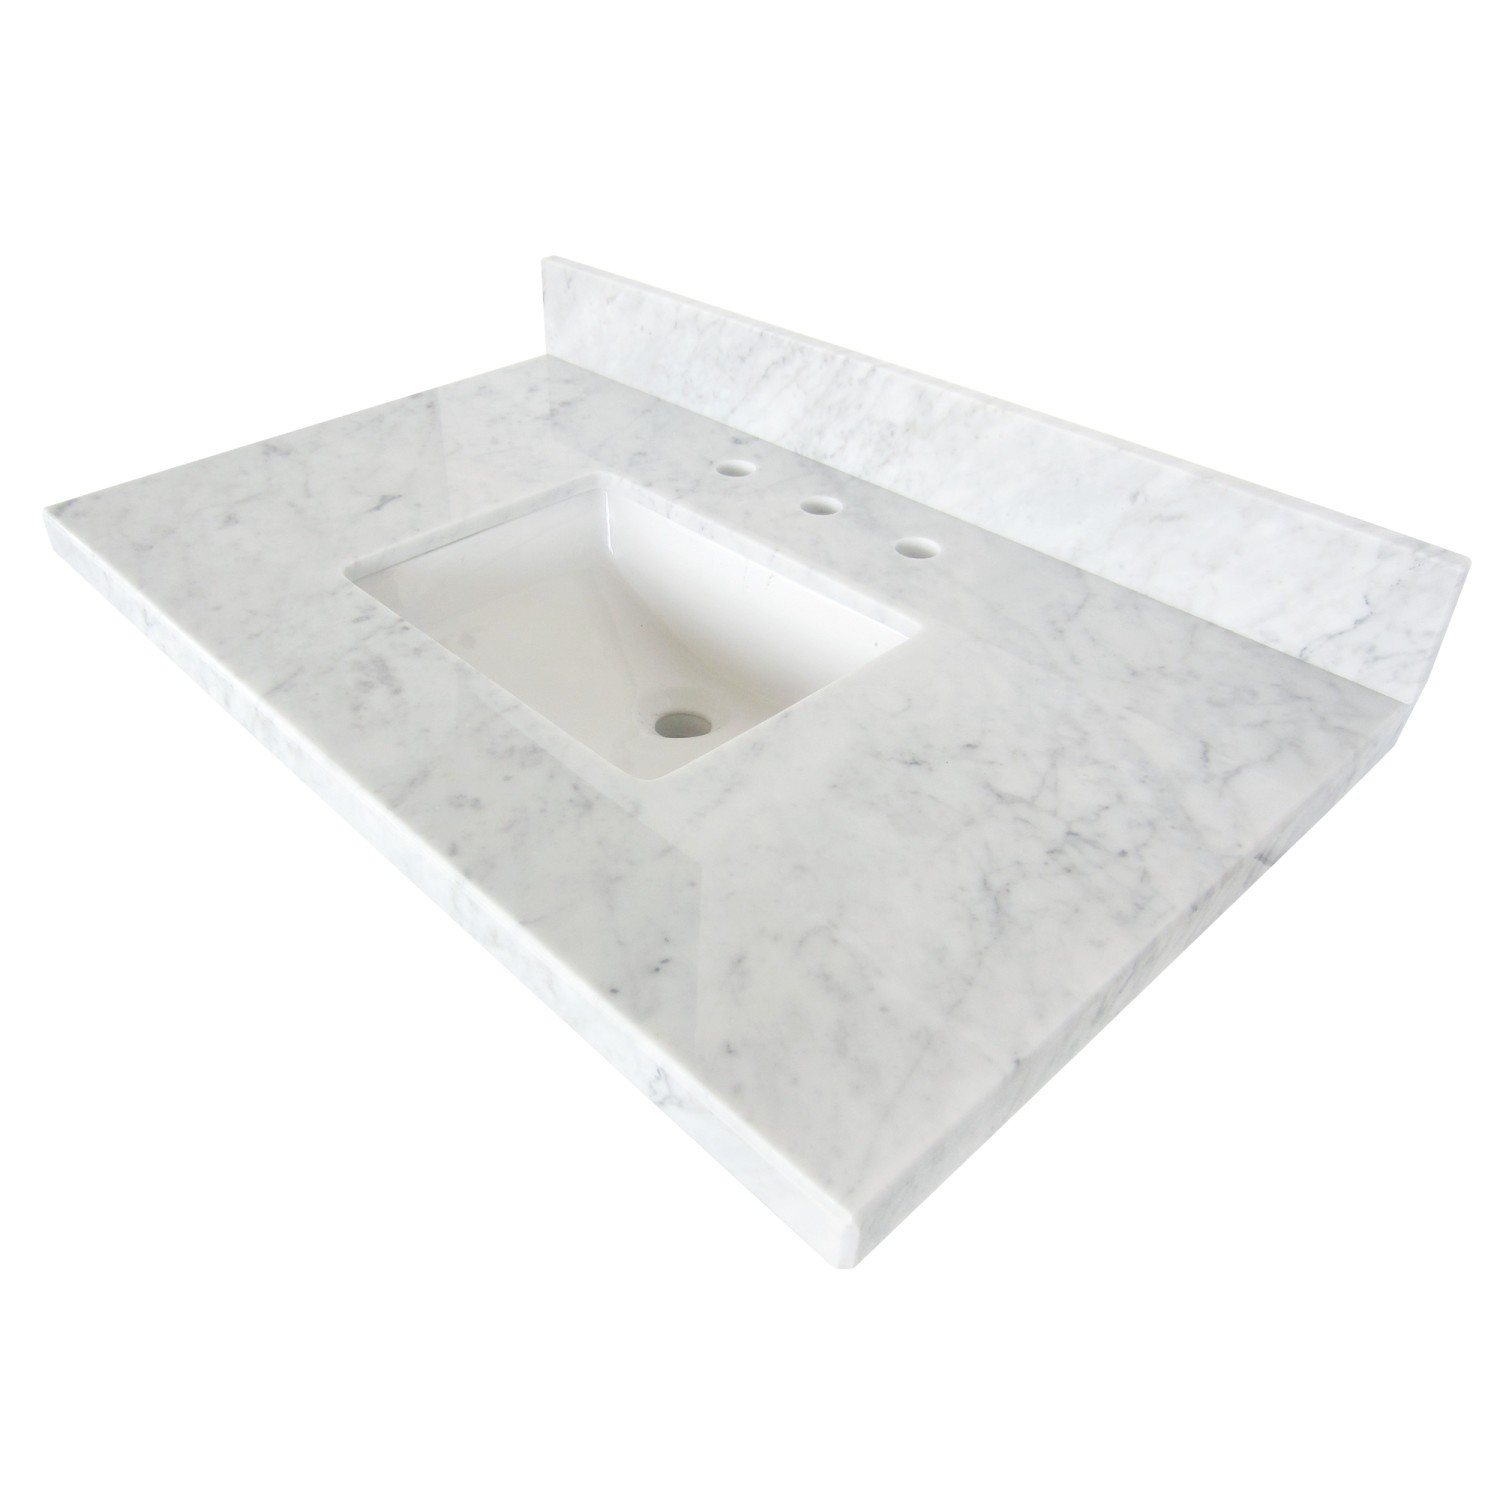 KINGSTON BRASS KVPB3622M38SQ TEMPLETON CARRARA MARBLE VANITY TOP WITH SQUARE UNDERMOUNT SINK IN WHITE